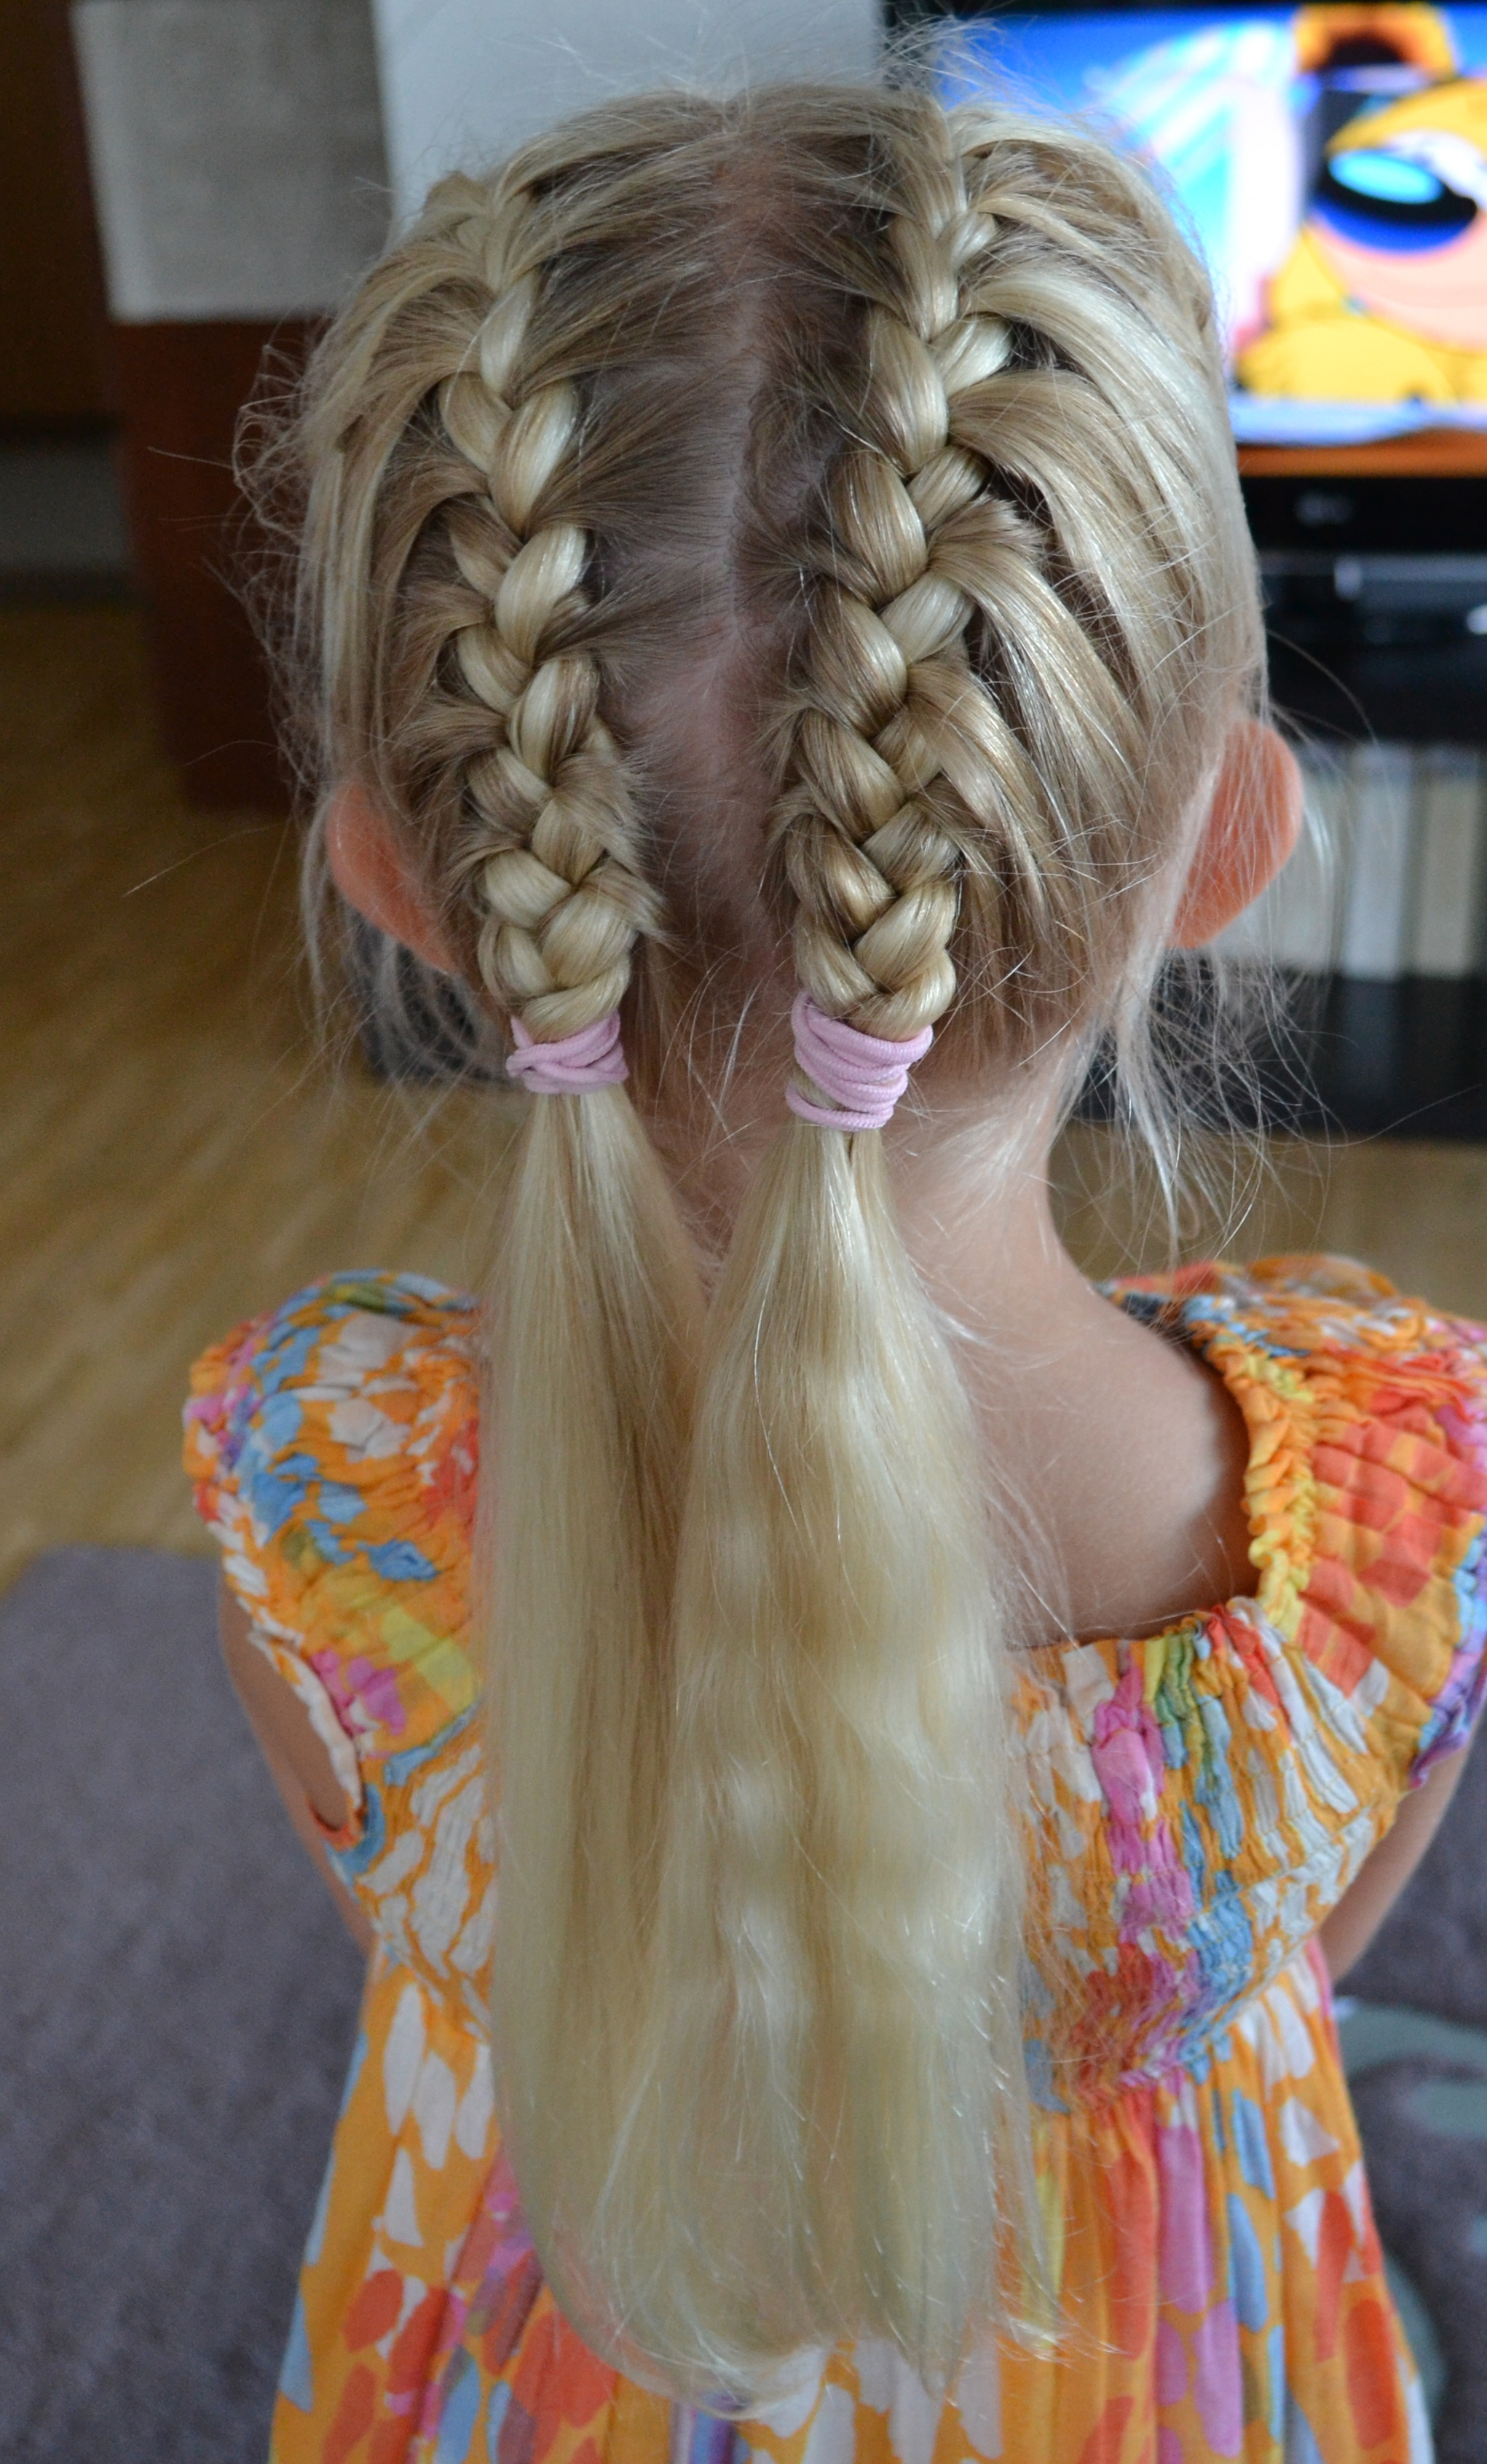 back to school hairstyles | Jenni's hairdays